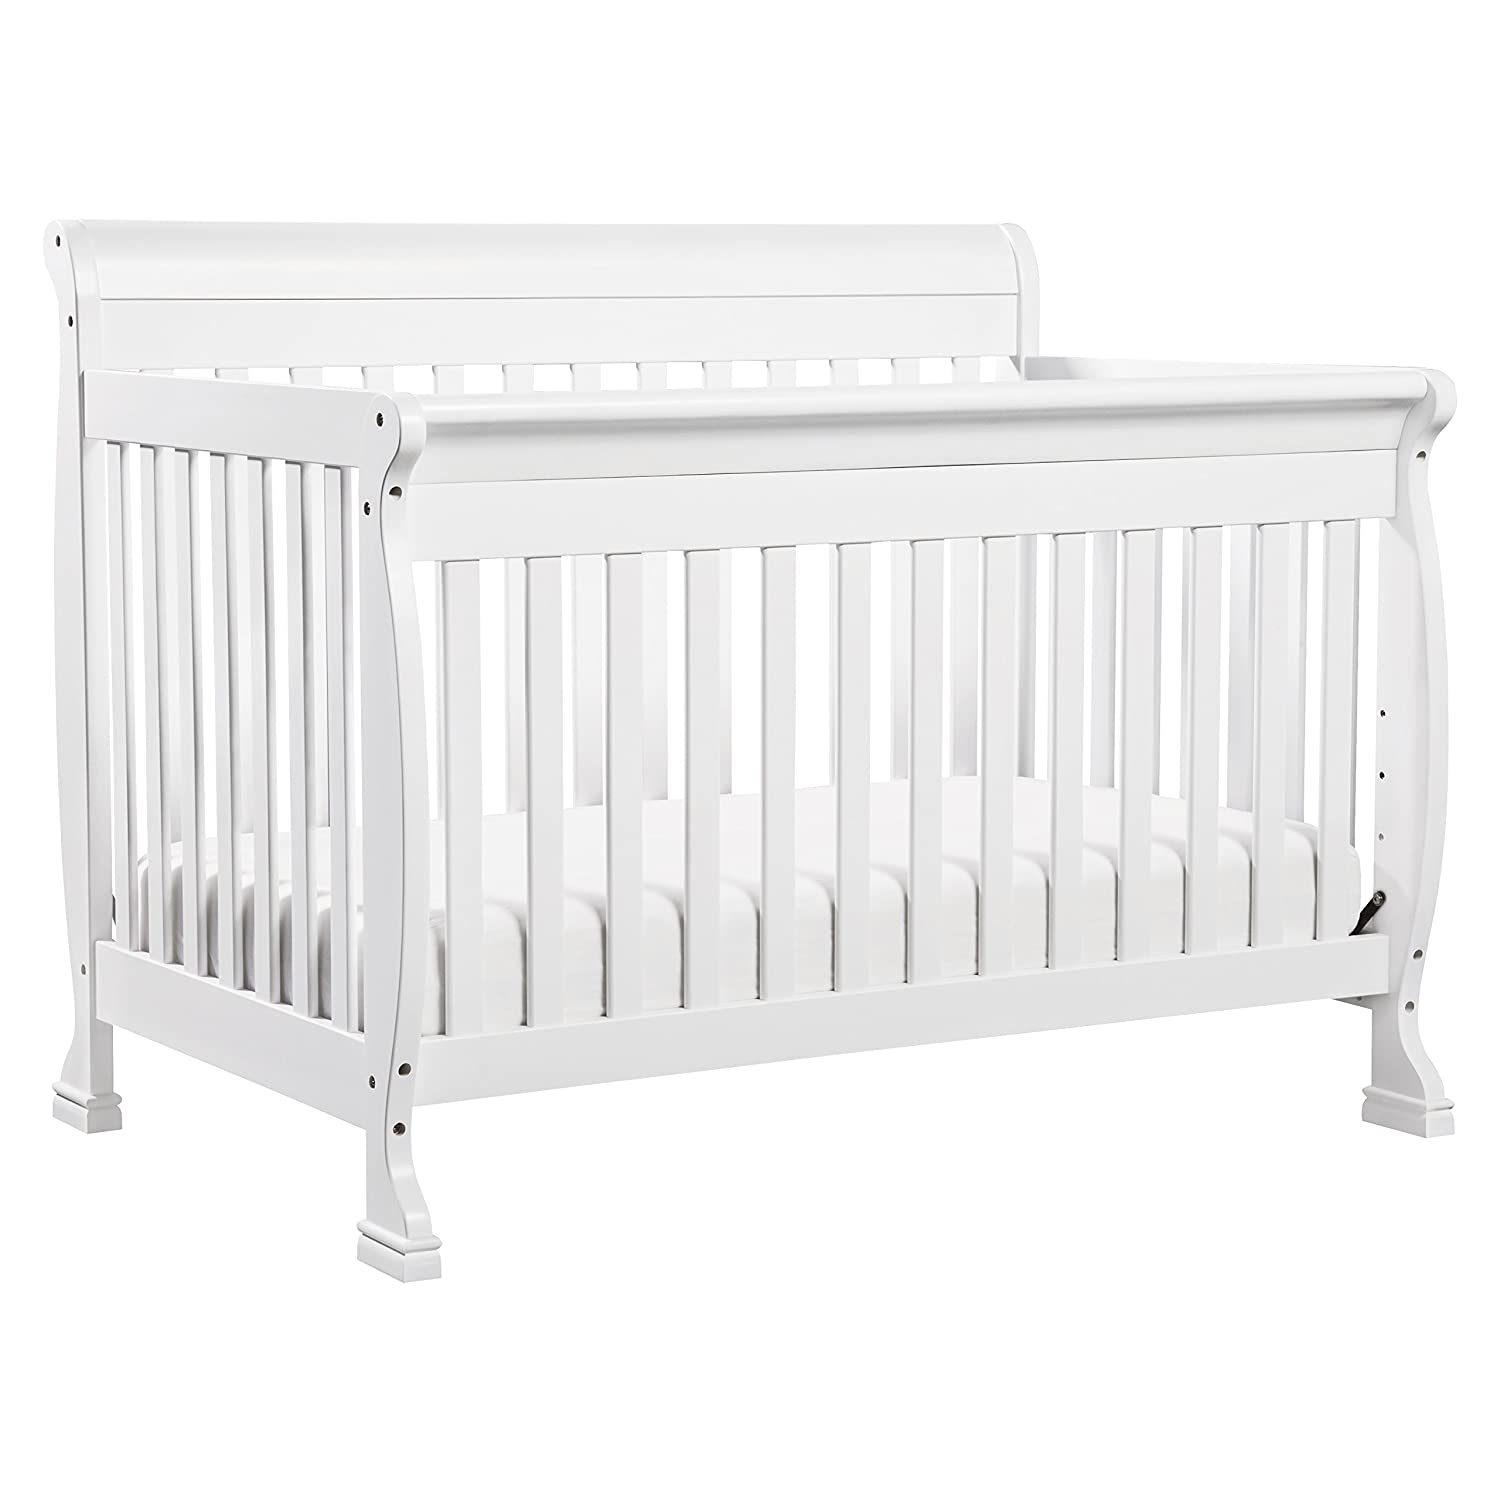 Crib for life prices - Davinci Kalani 4 In 1 Convertible Crib With Toddler